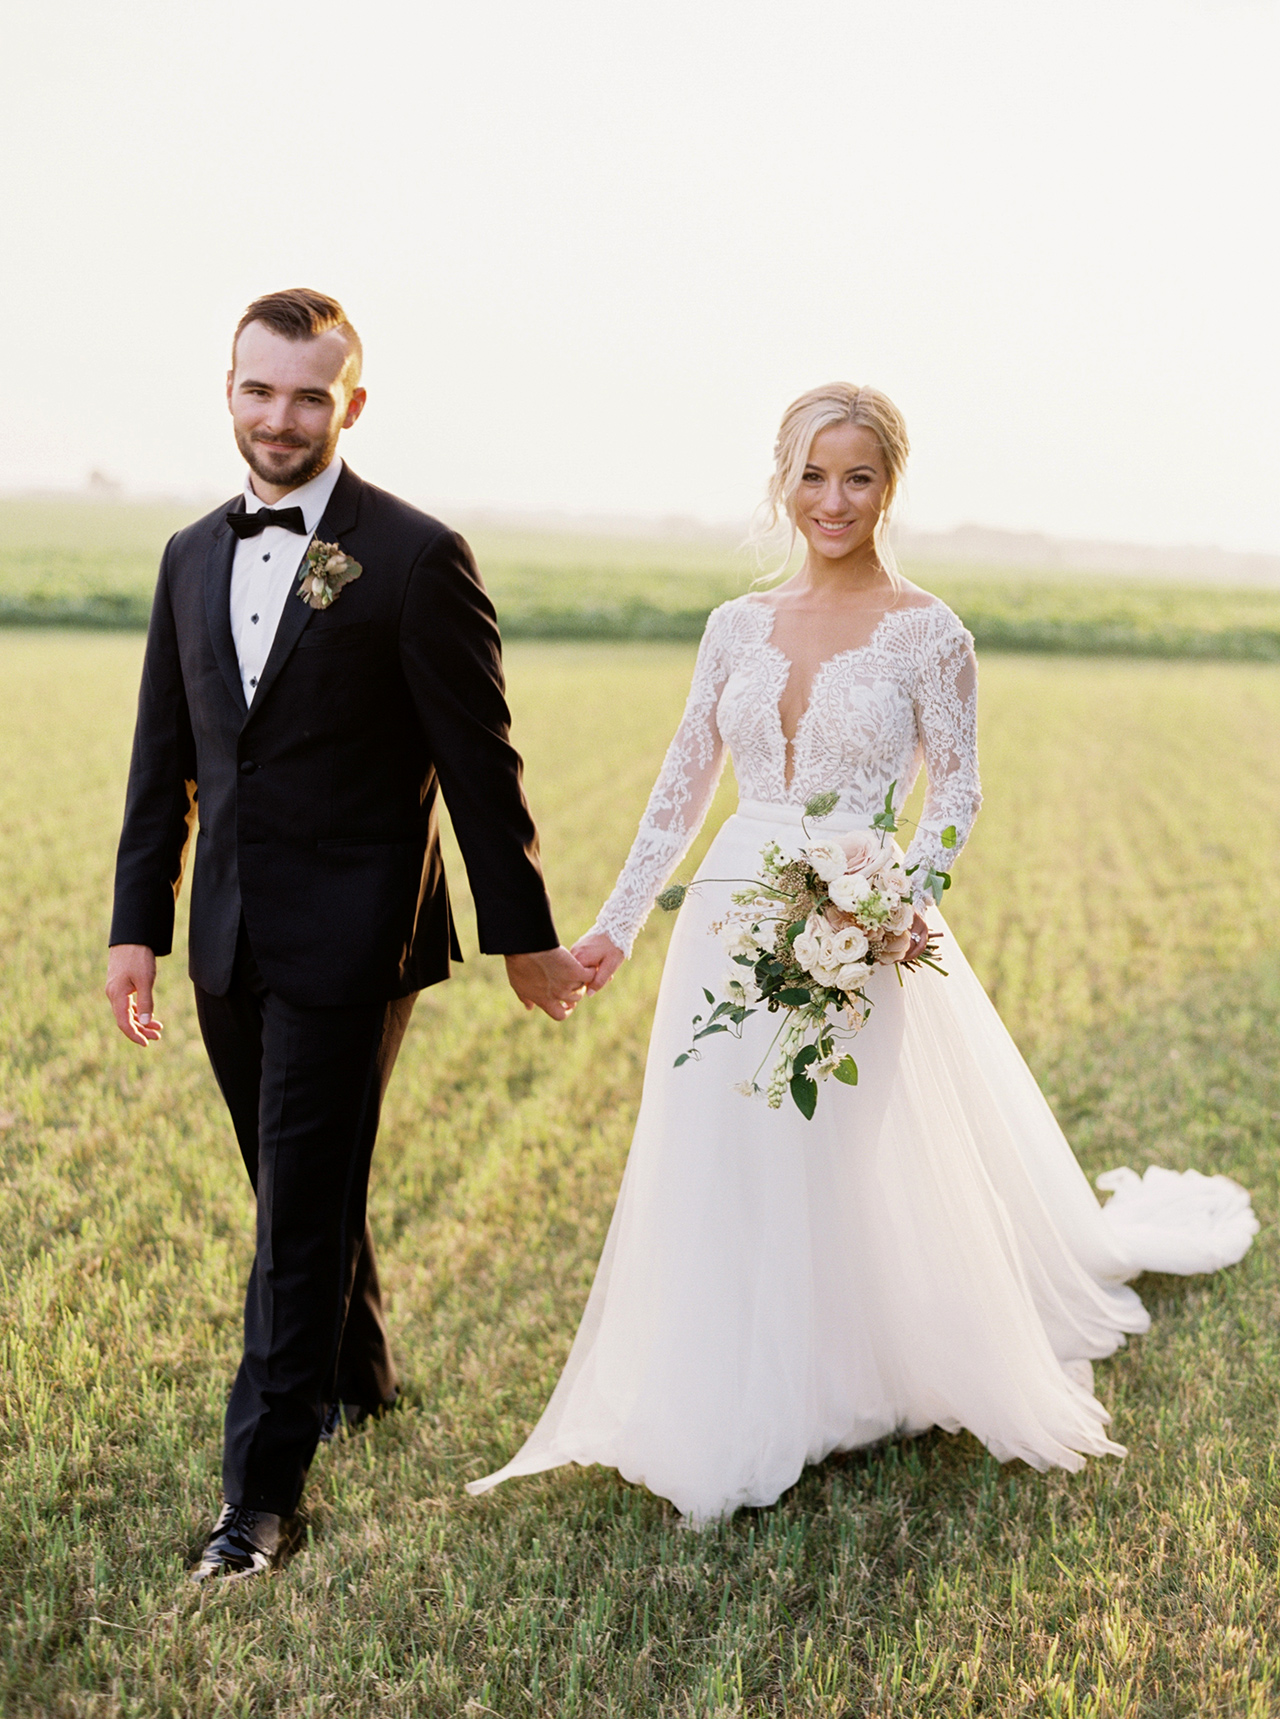 Picture the Typical Farm Wedding—This Personal, Refined Wisconsin Celebration Is Better